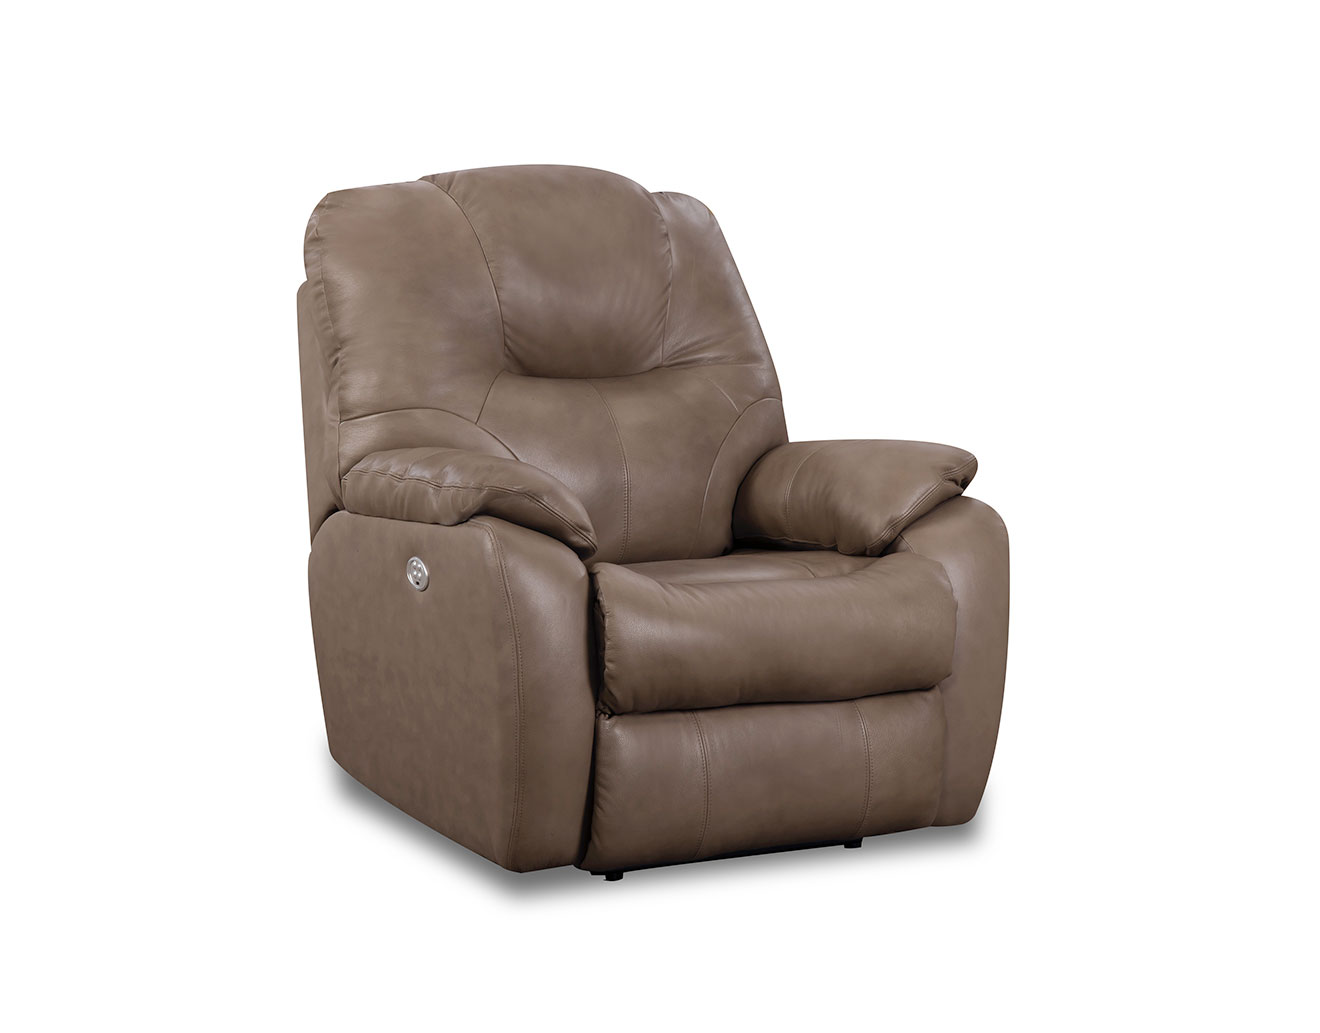 6838P-AVALON-IN-956-17-ST.-LAURENT-TAUPE-RECLINER-PU-SWP_web